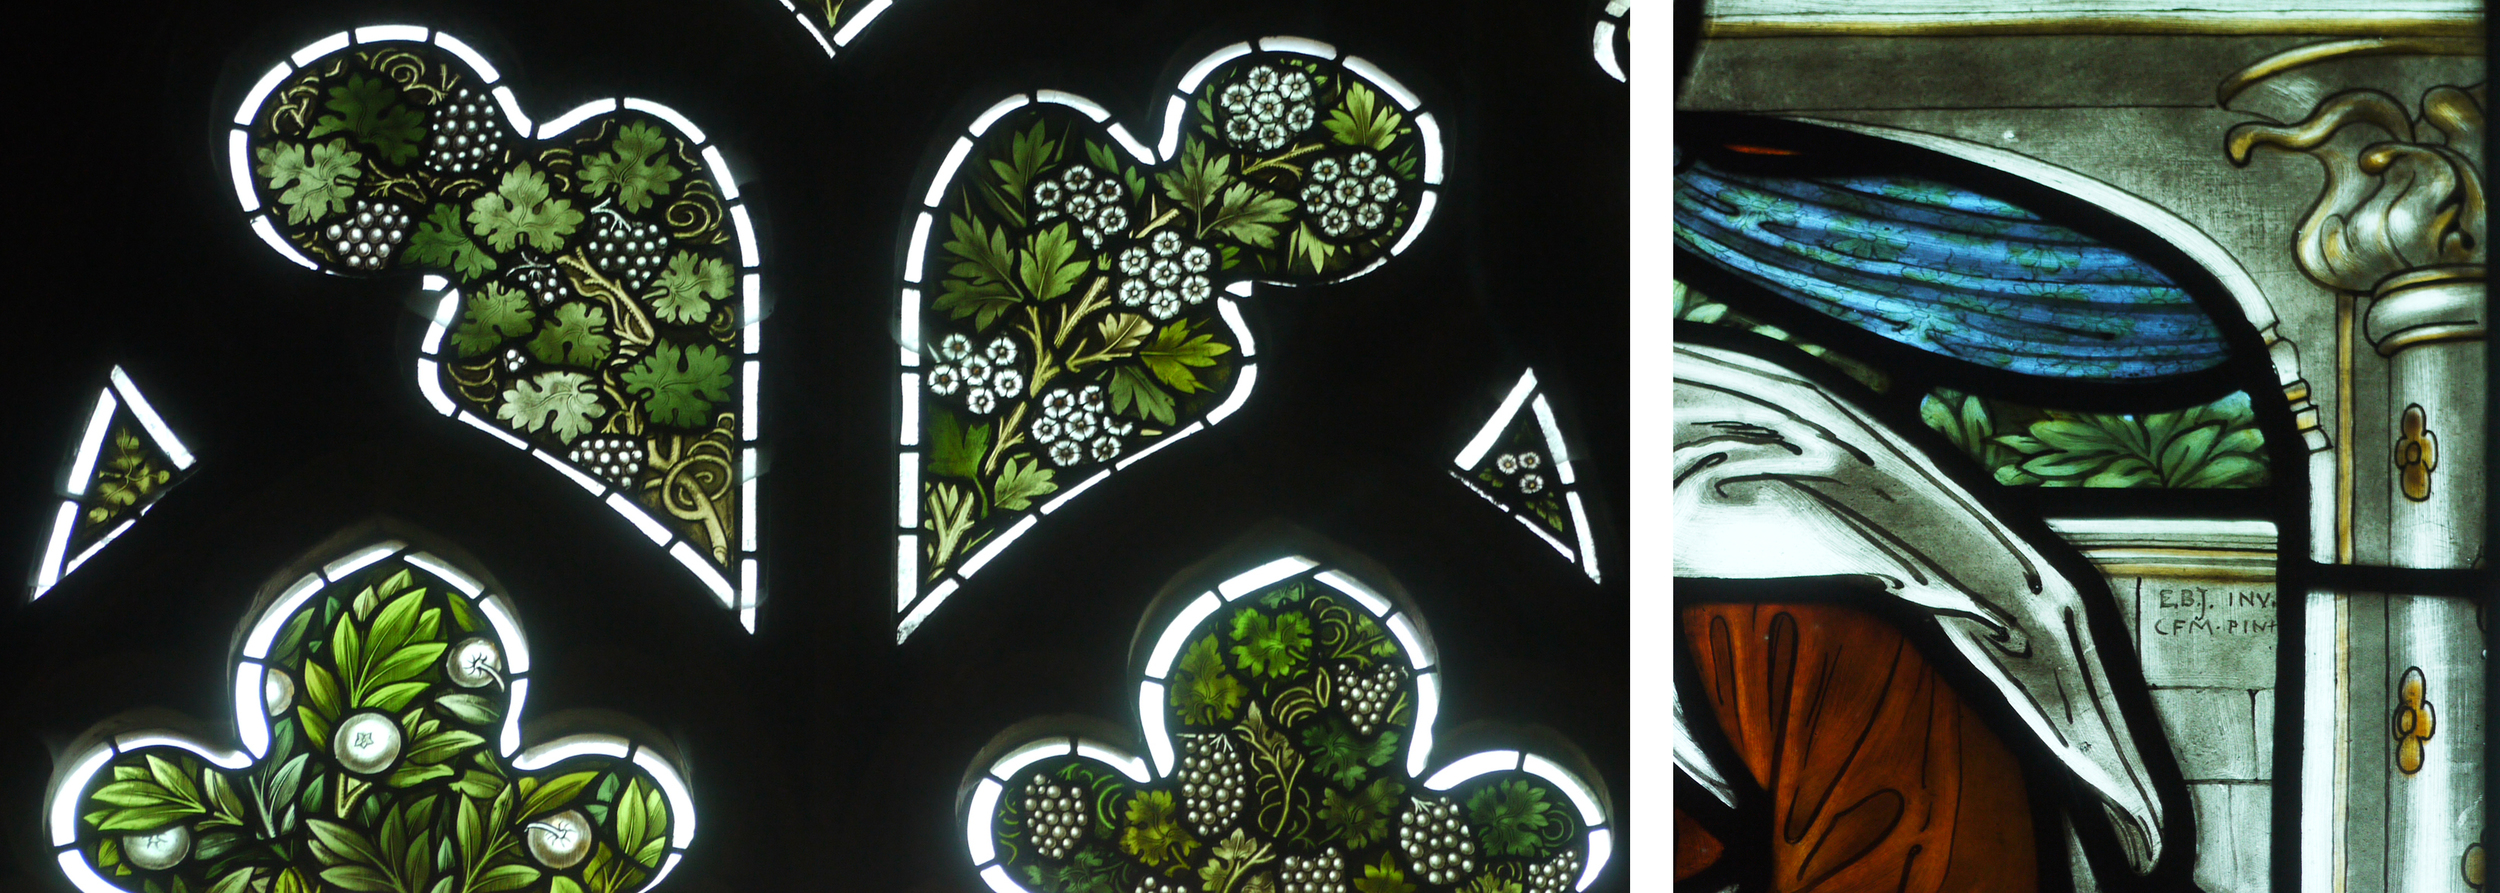 Details from the Vyner Memorial window, Morris & Co. 1872. On the right rare (for stained glass)initials of EBJ, designer and CFM, glass painter.Christ Church, Oxford